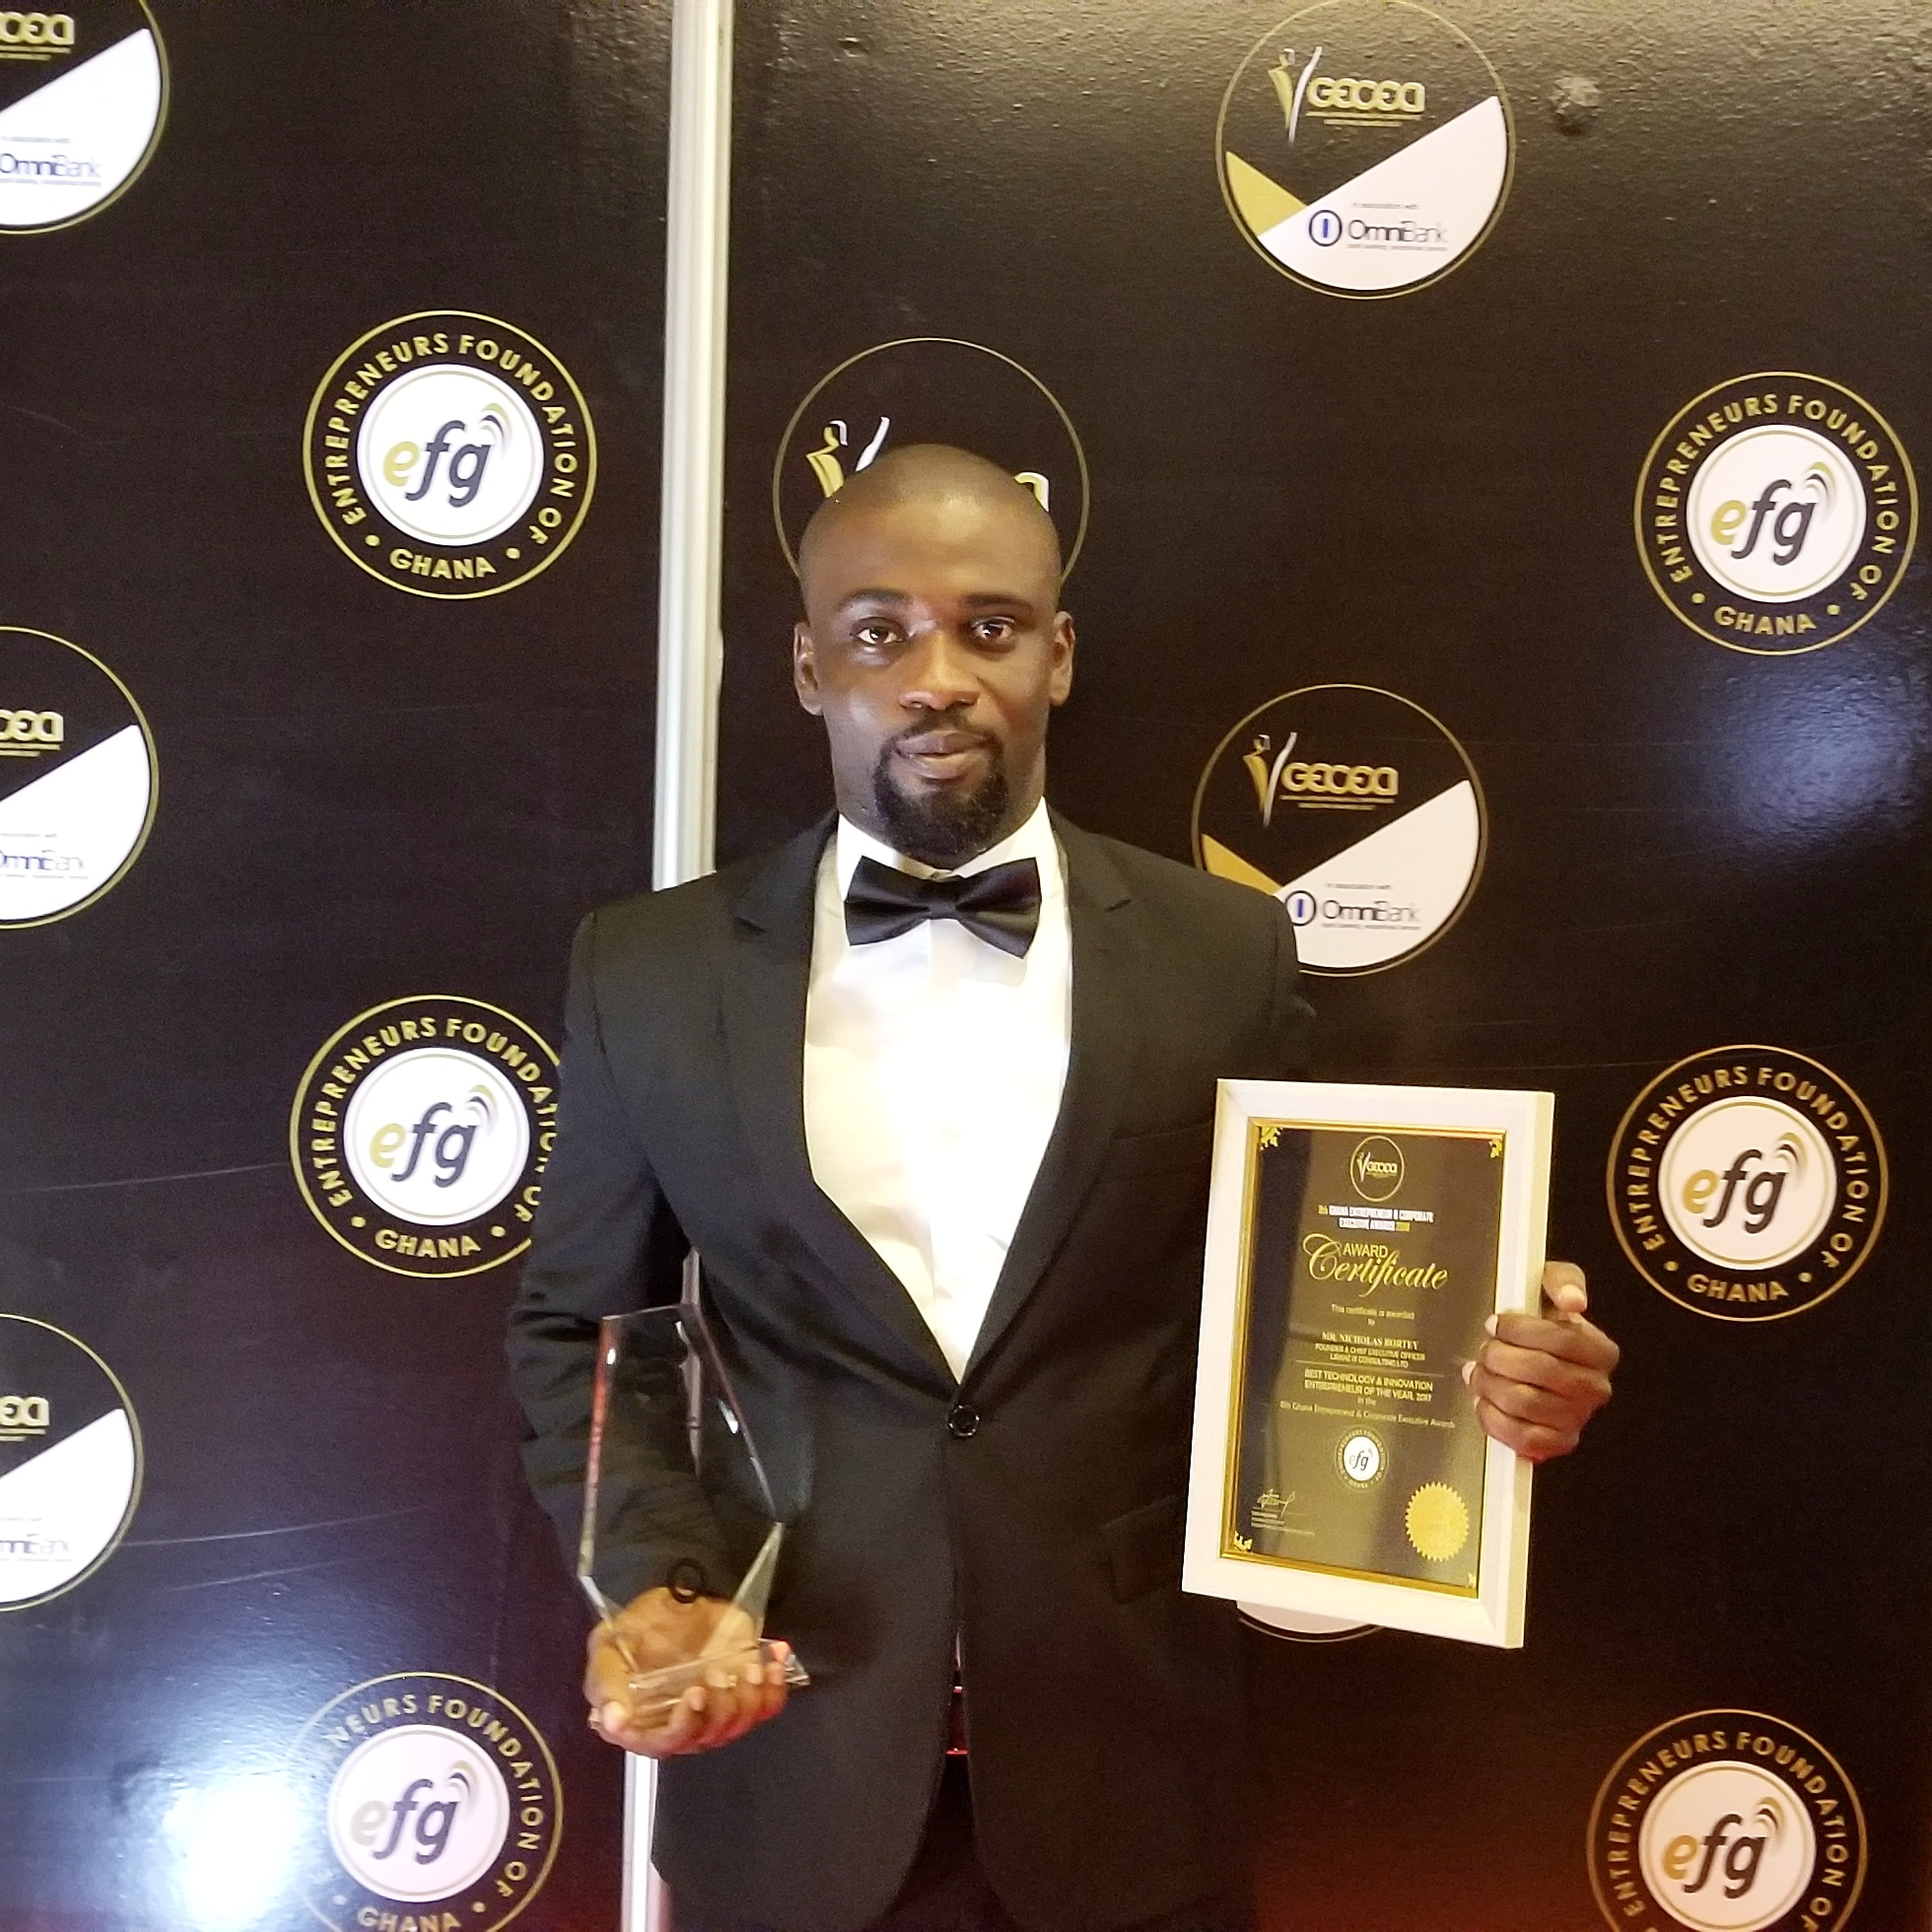 CEO of Liranz wins Technology & Innovation of the Year at the Ghana Entrepreneur & Corporate Executives Award 2018